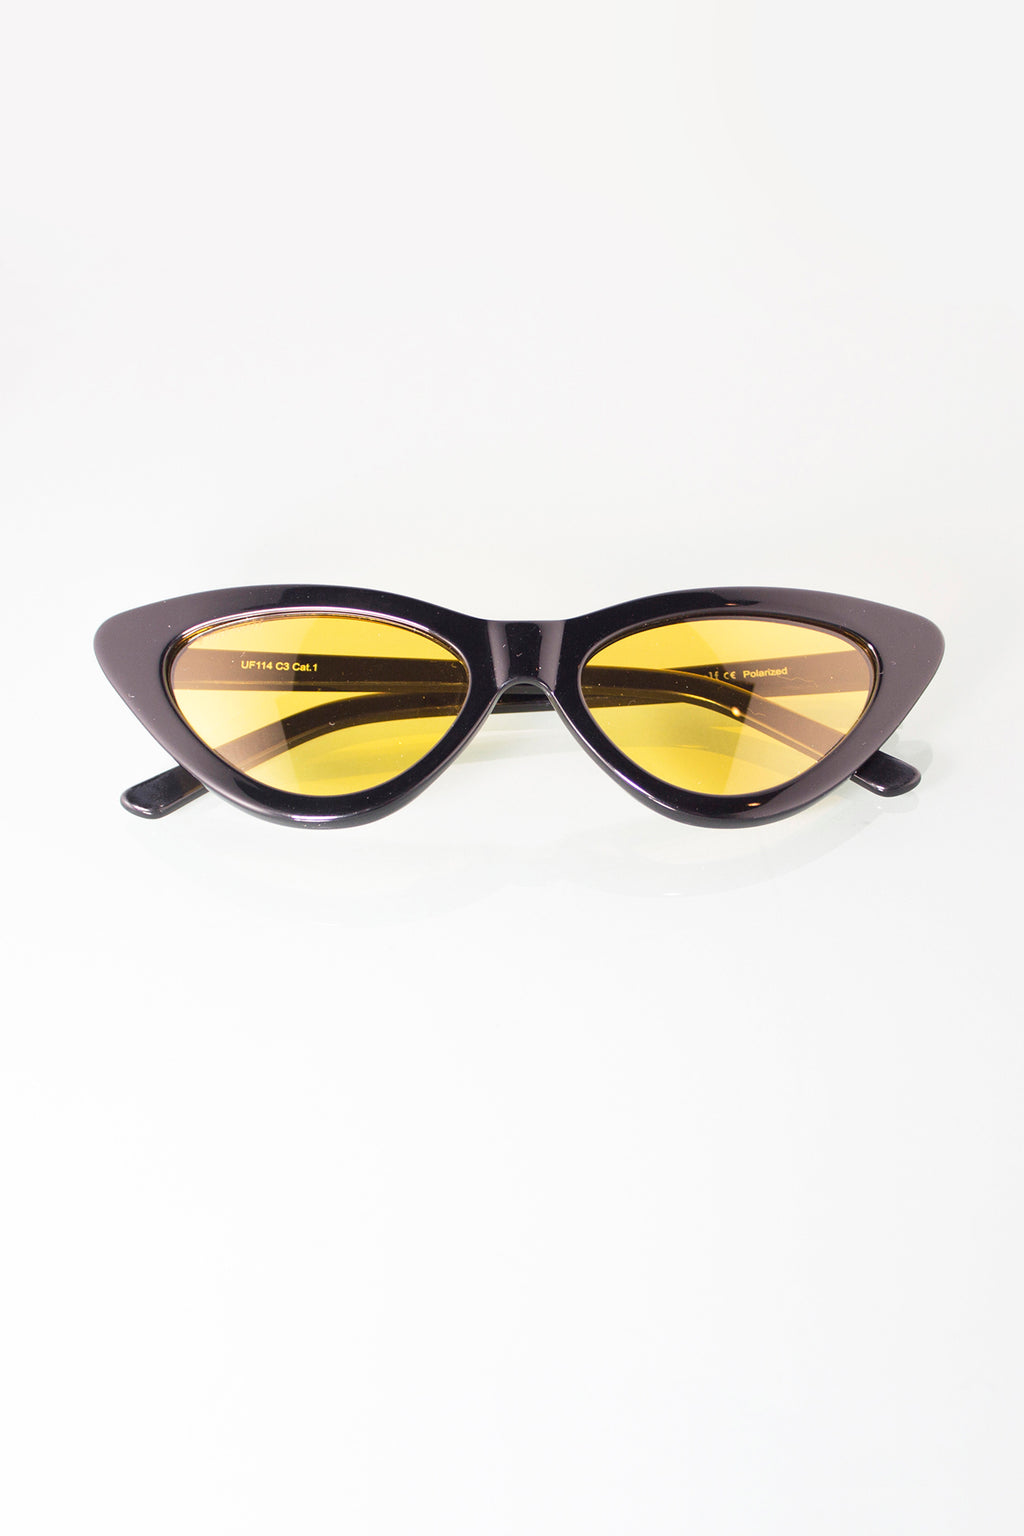 Sunglasses DANDELION BLACK - One Wolf